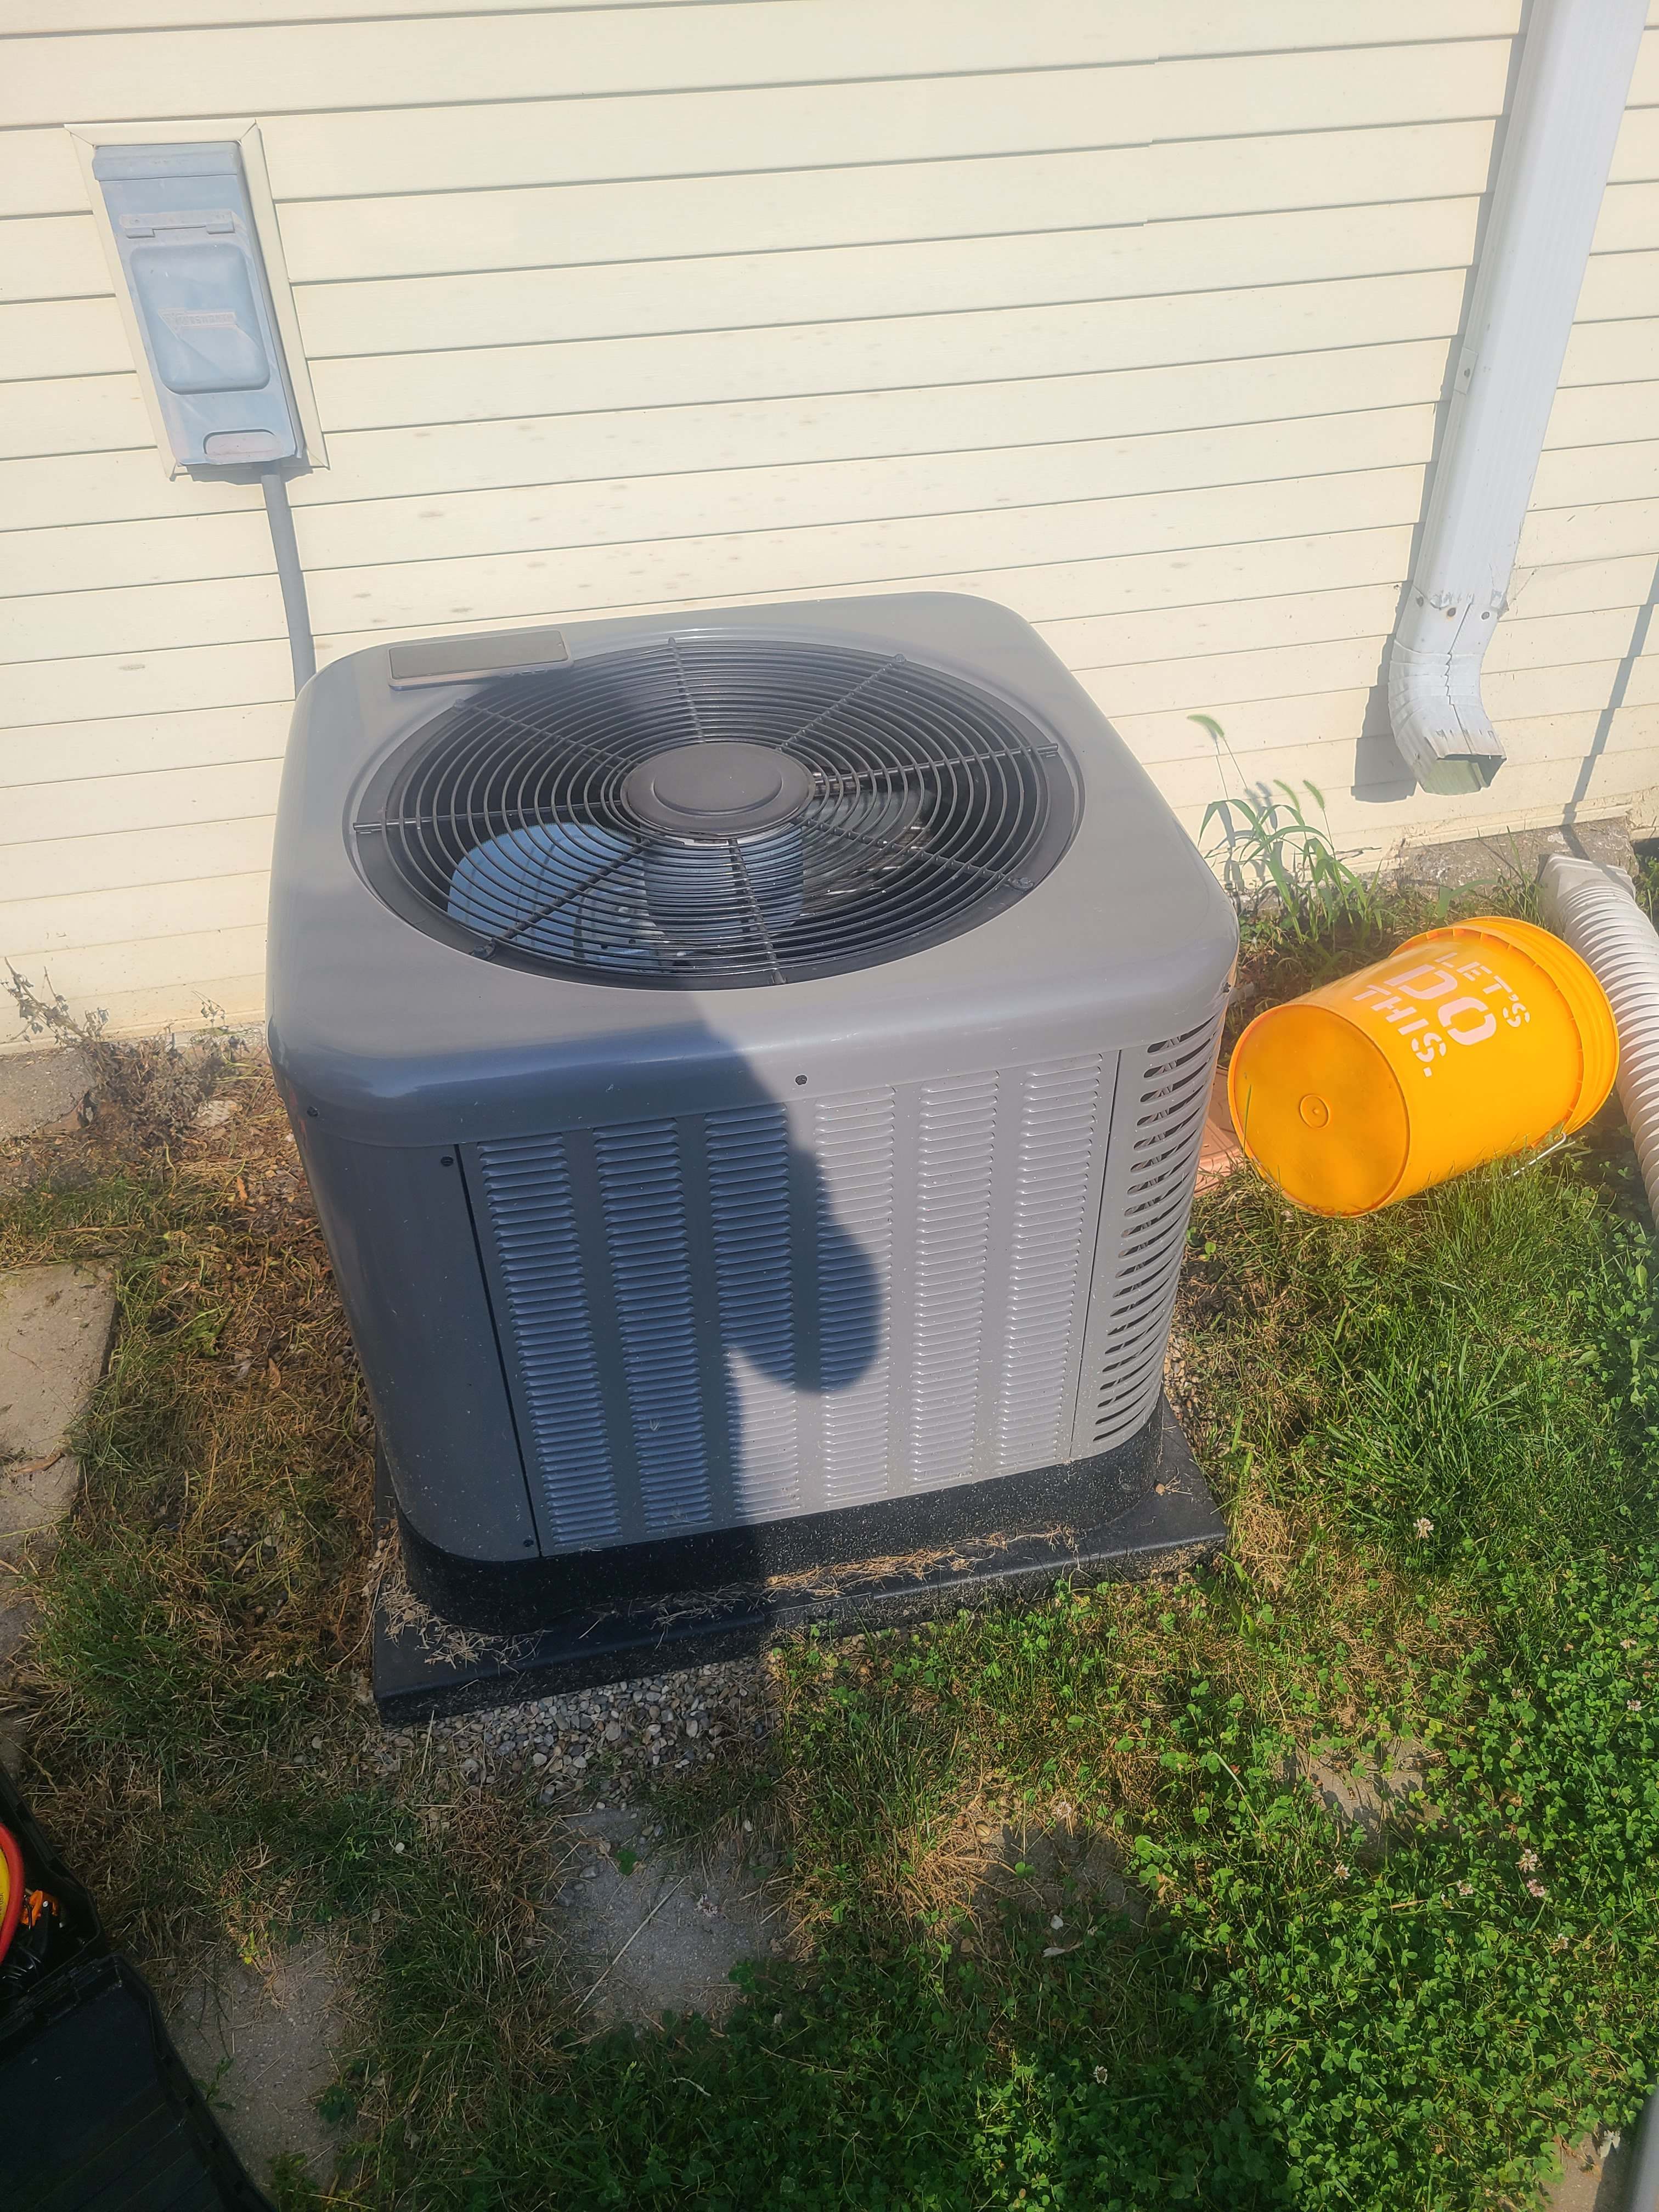 Ac maintenance on new Rudd 13 seer R410a system in Morton Grove